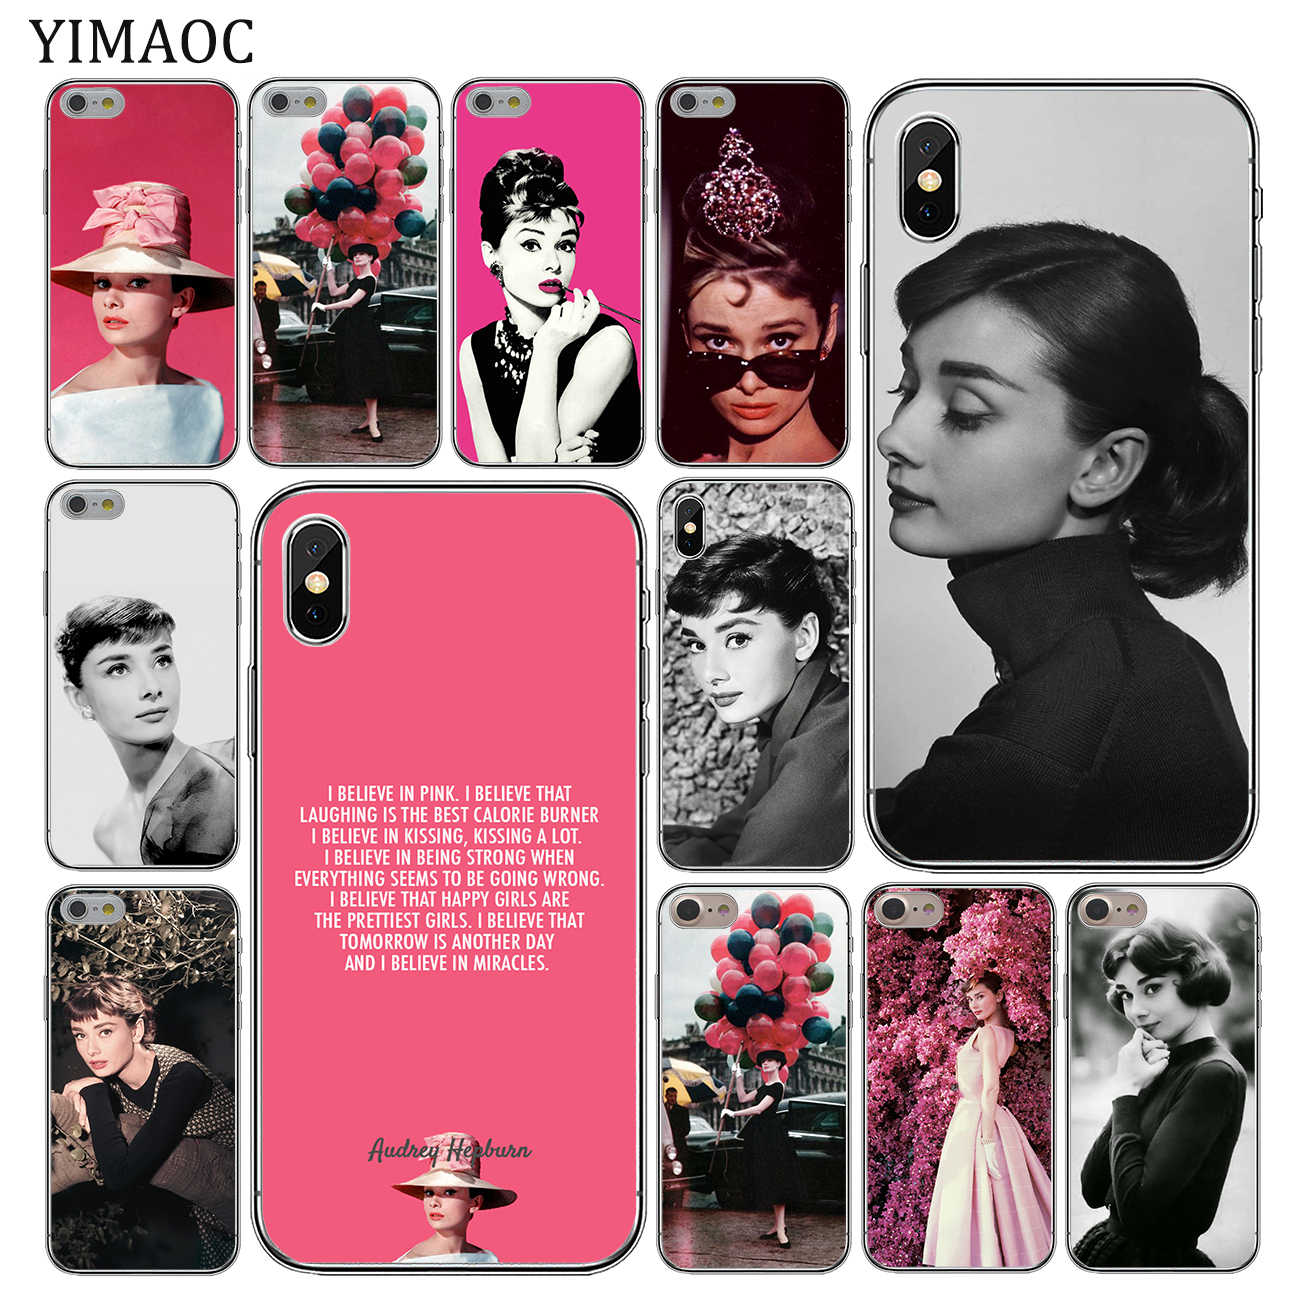 YIMAOC Audrey Hepburn Soft Silicone Cover Case for Apple iPhone 11 Pro X XR XS Max 6 6S 7 8 Plus 5 5S SE 10 TPU Phone Cases